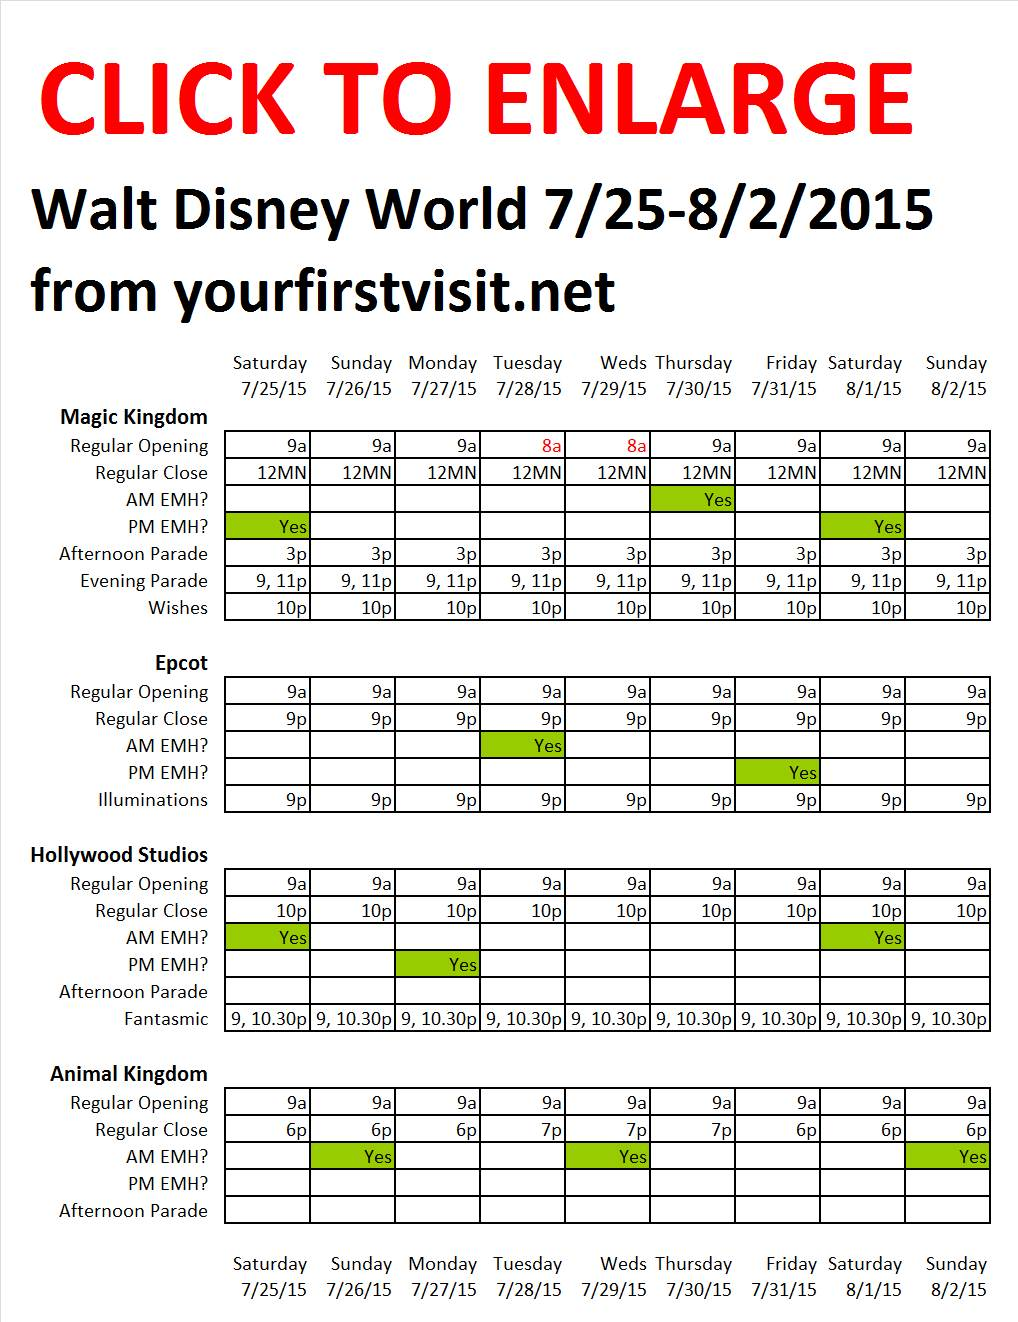 Disney World 7-25 to 8-2-2015 from yourfirstvisit.net